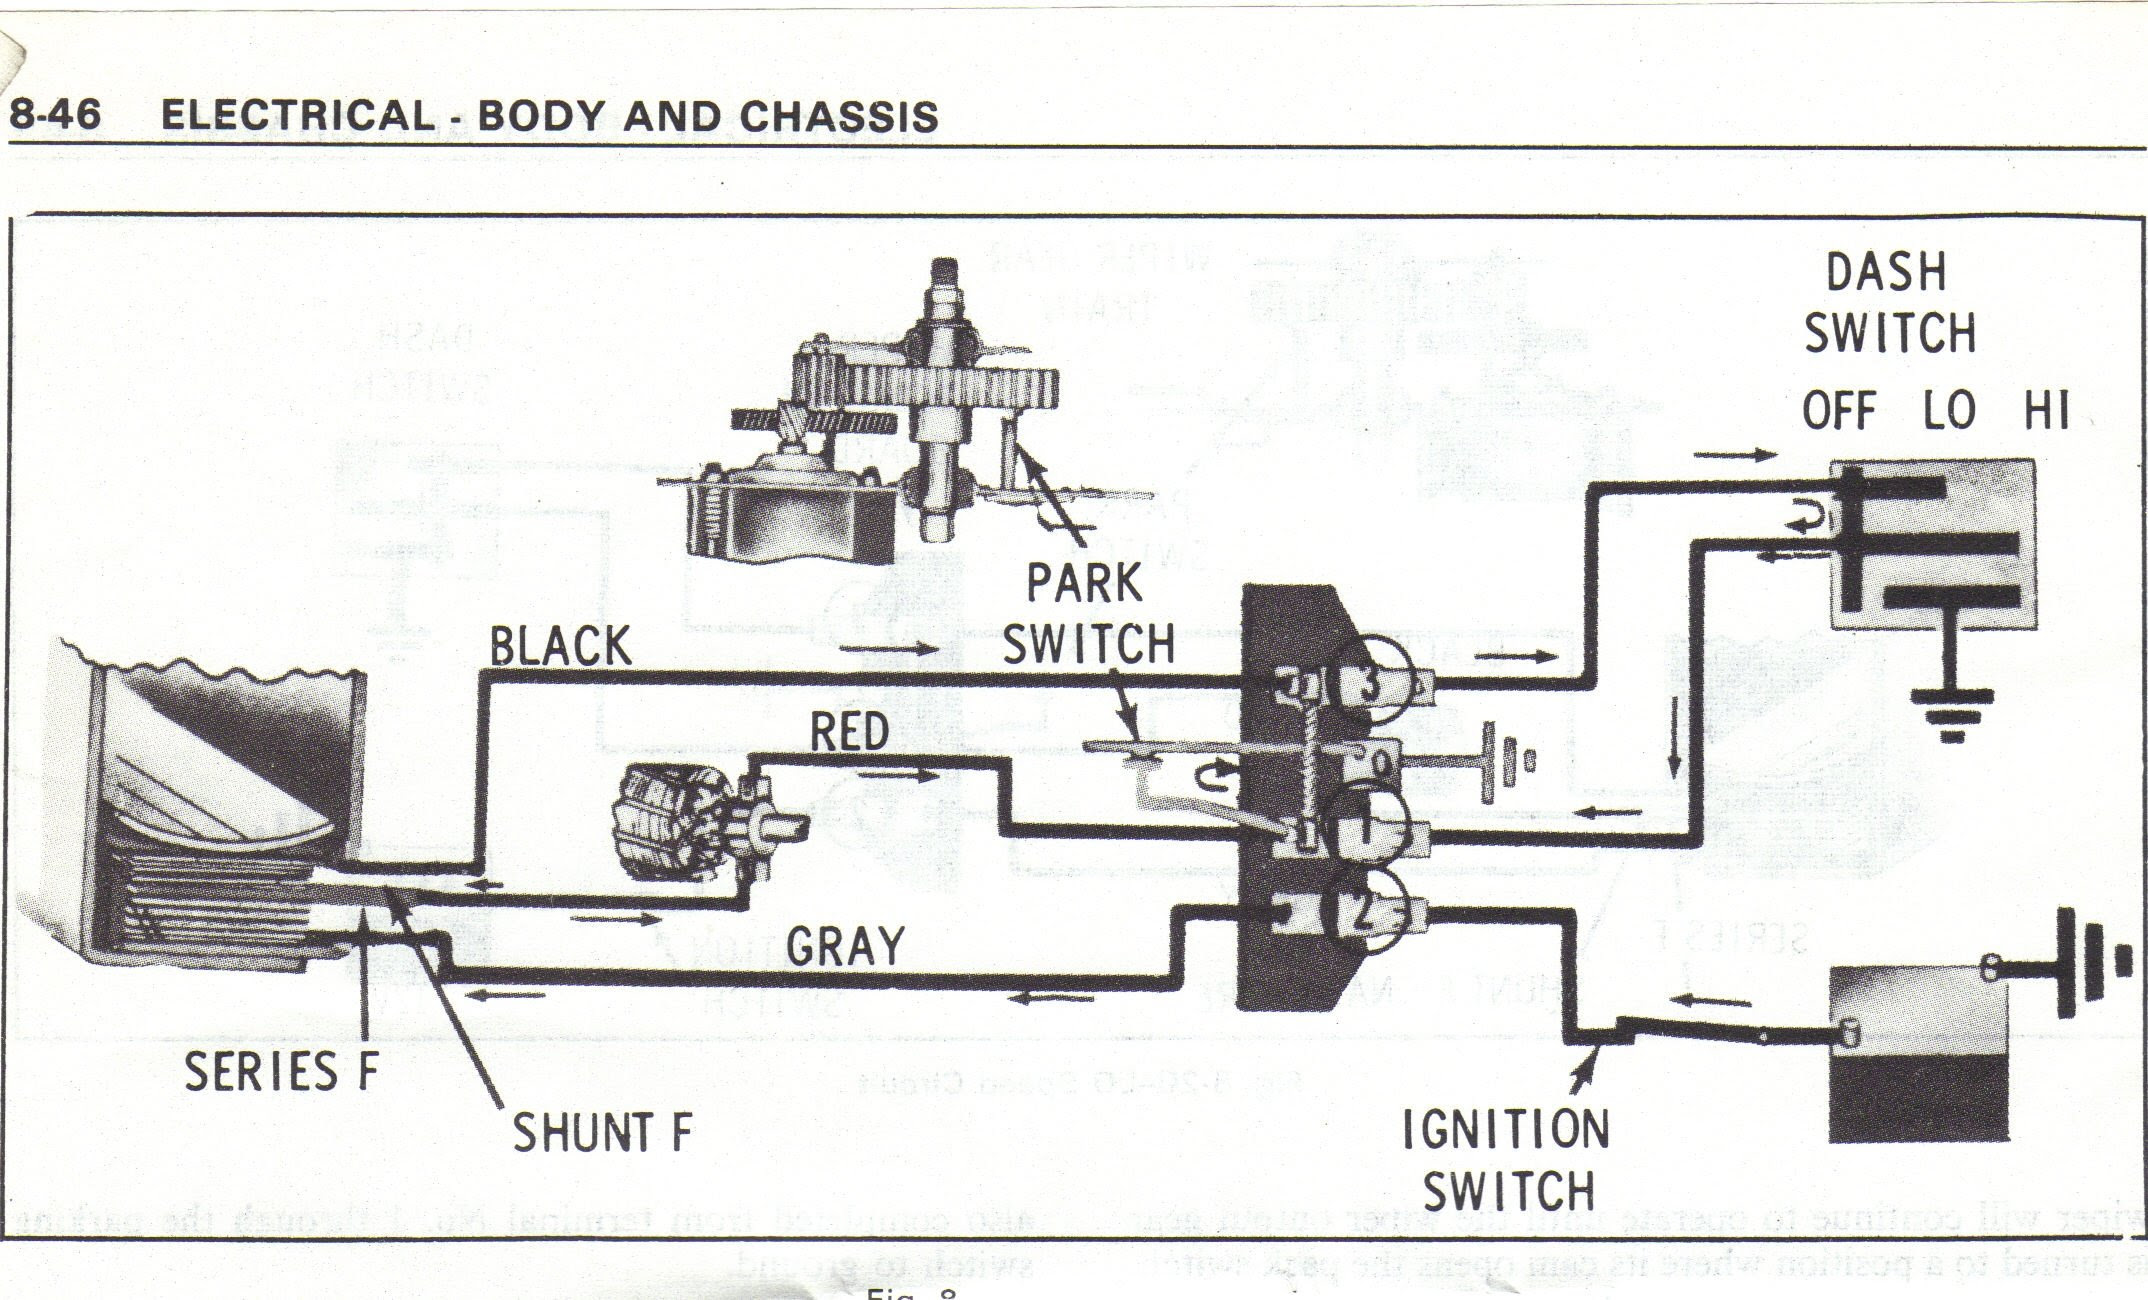 Wiring Diagram For 72 Chevelle Wiper Motor Wiring Diagram Verison Verison Lastanzadeltempo It